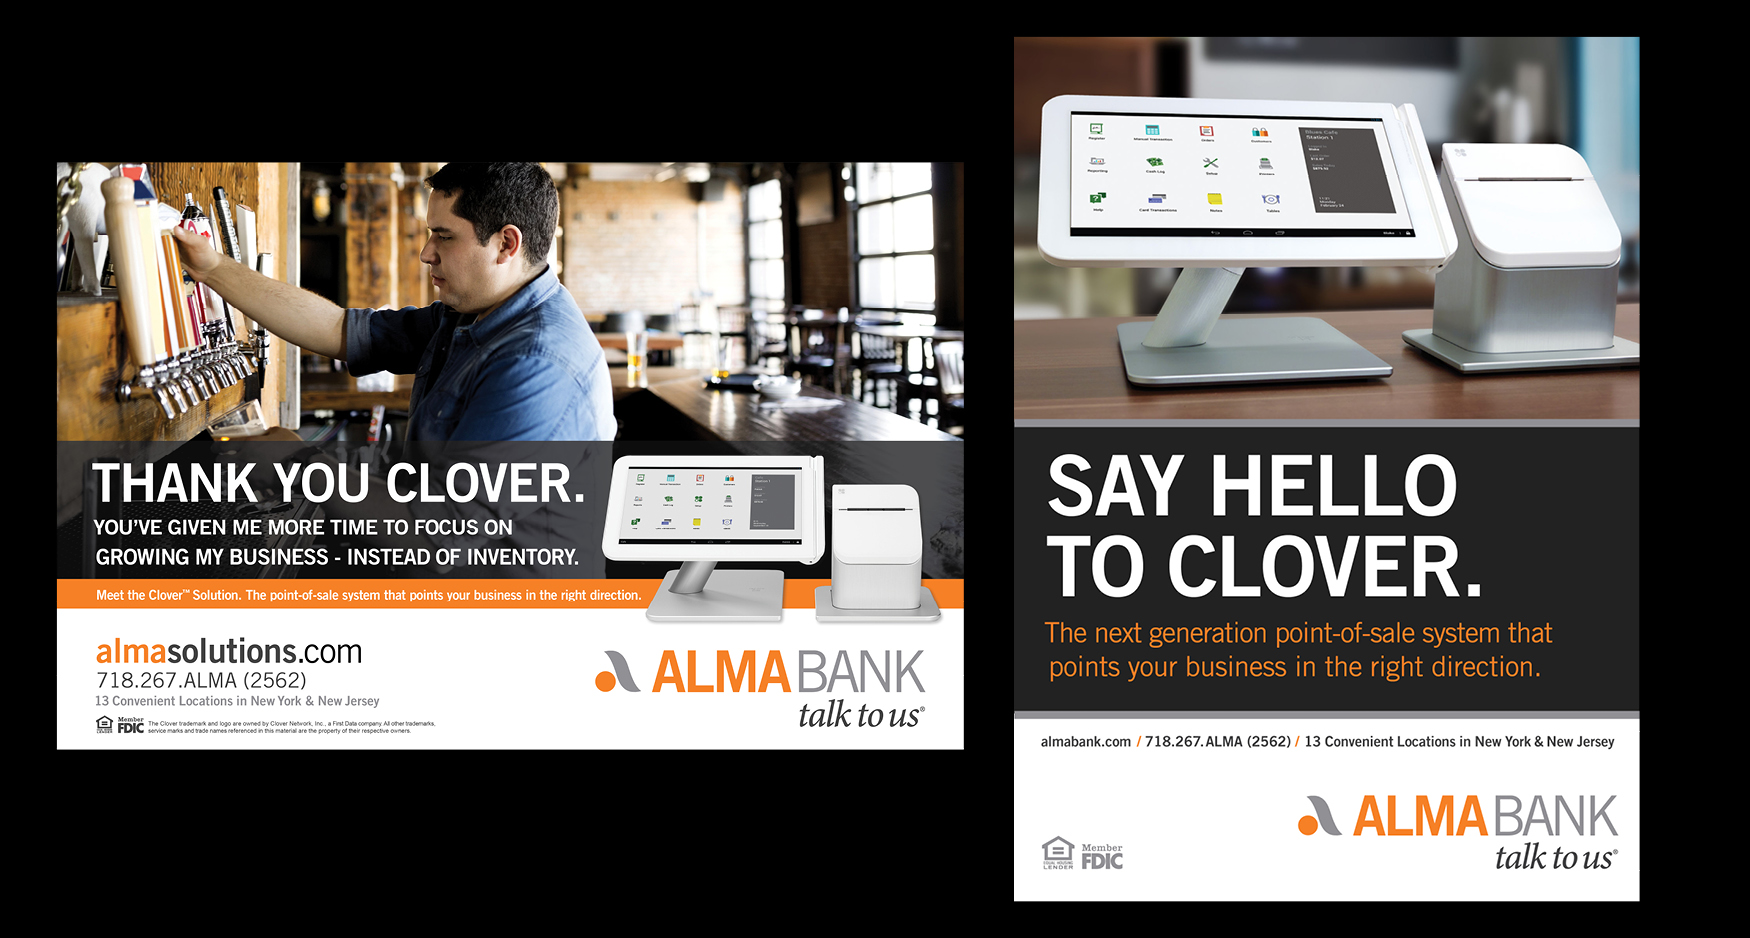 Alma - ALMA BANK – CLOVER POINT-OF-SALE SYSTEM CAMPAIGN